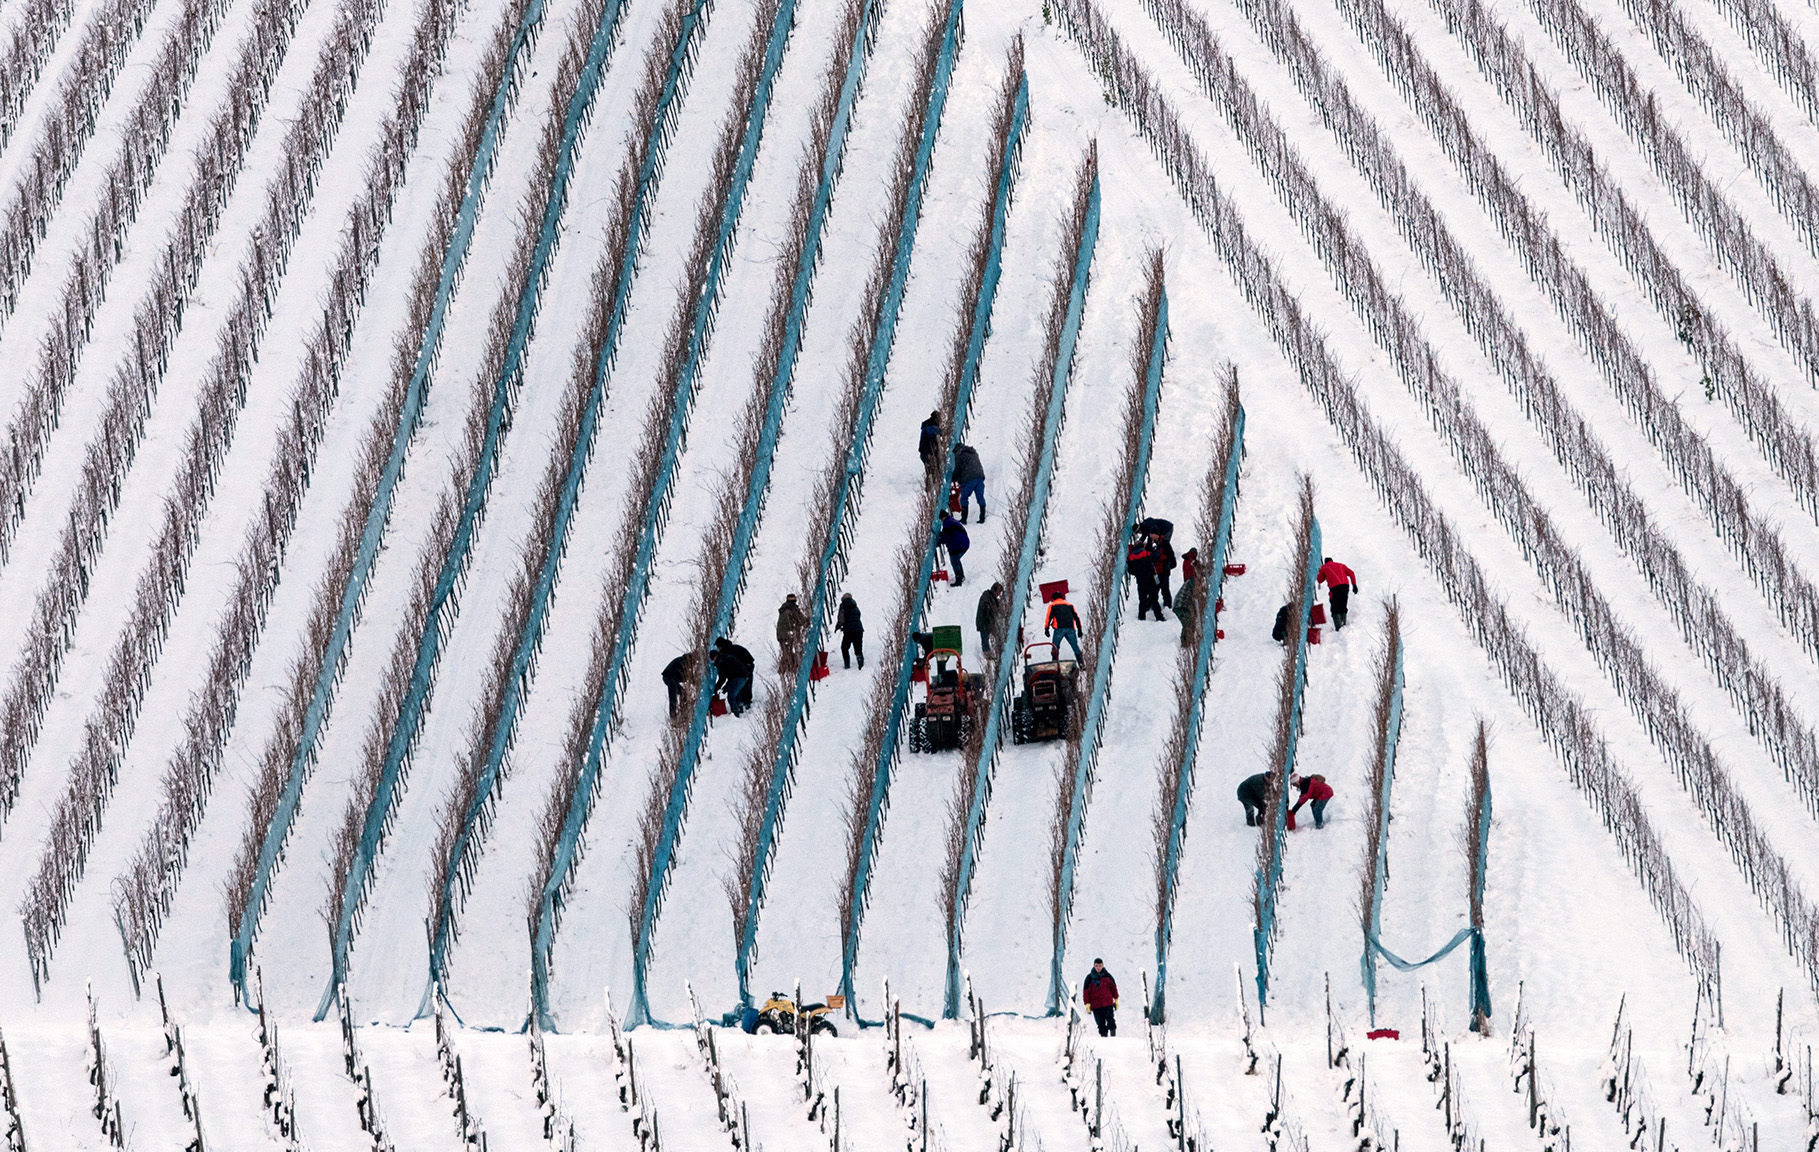 Grape harvest for ice wine in Glottertal